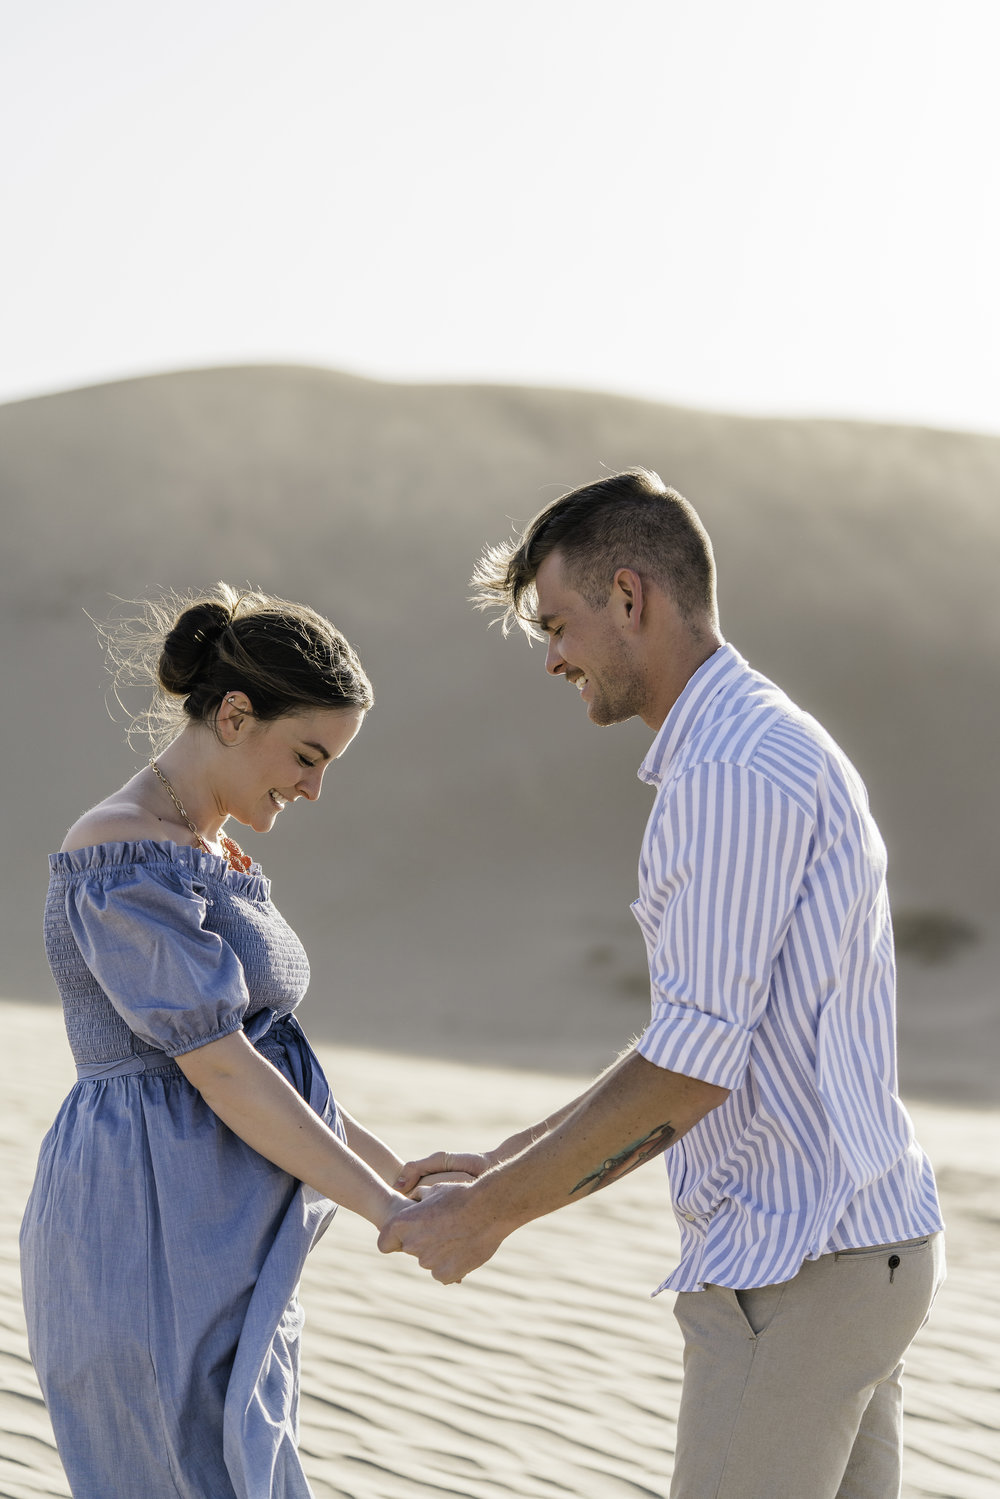 NewMexico-Sand-Dunes-Proposal-Carissa-and-Ben-1025.jpg